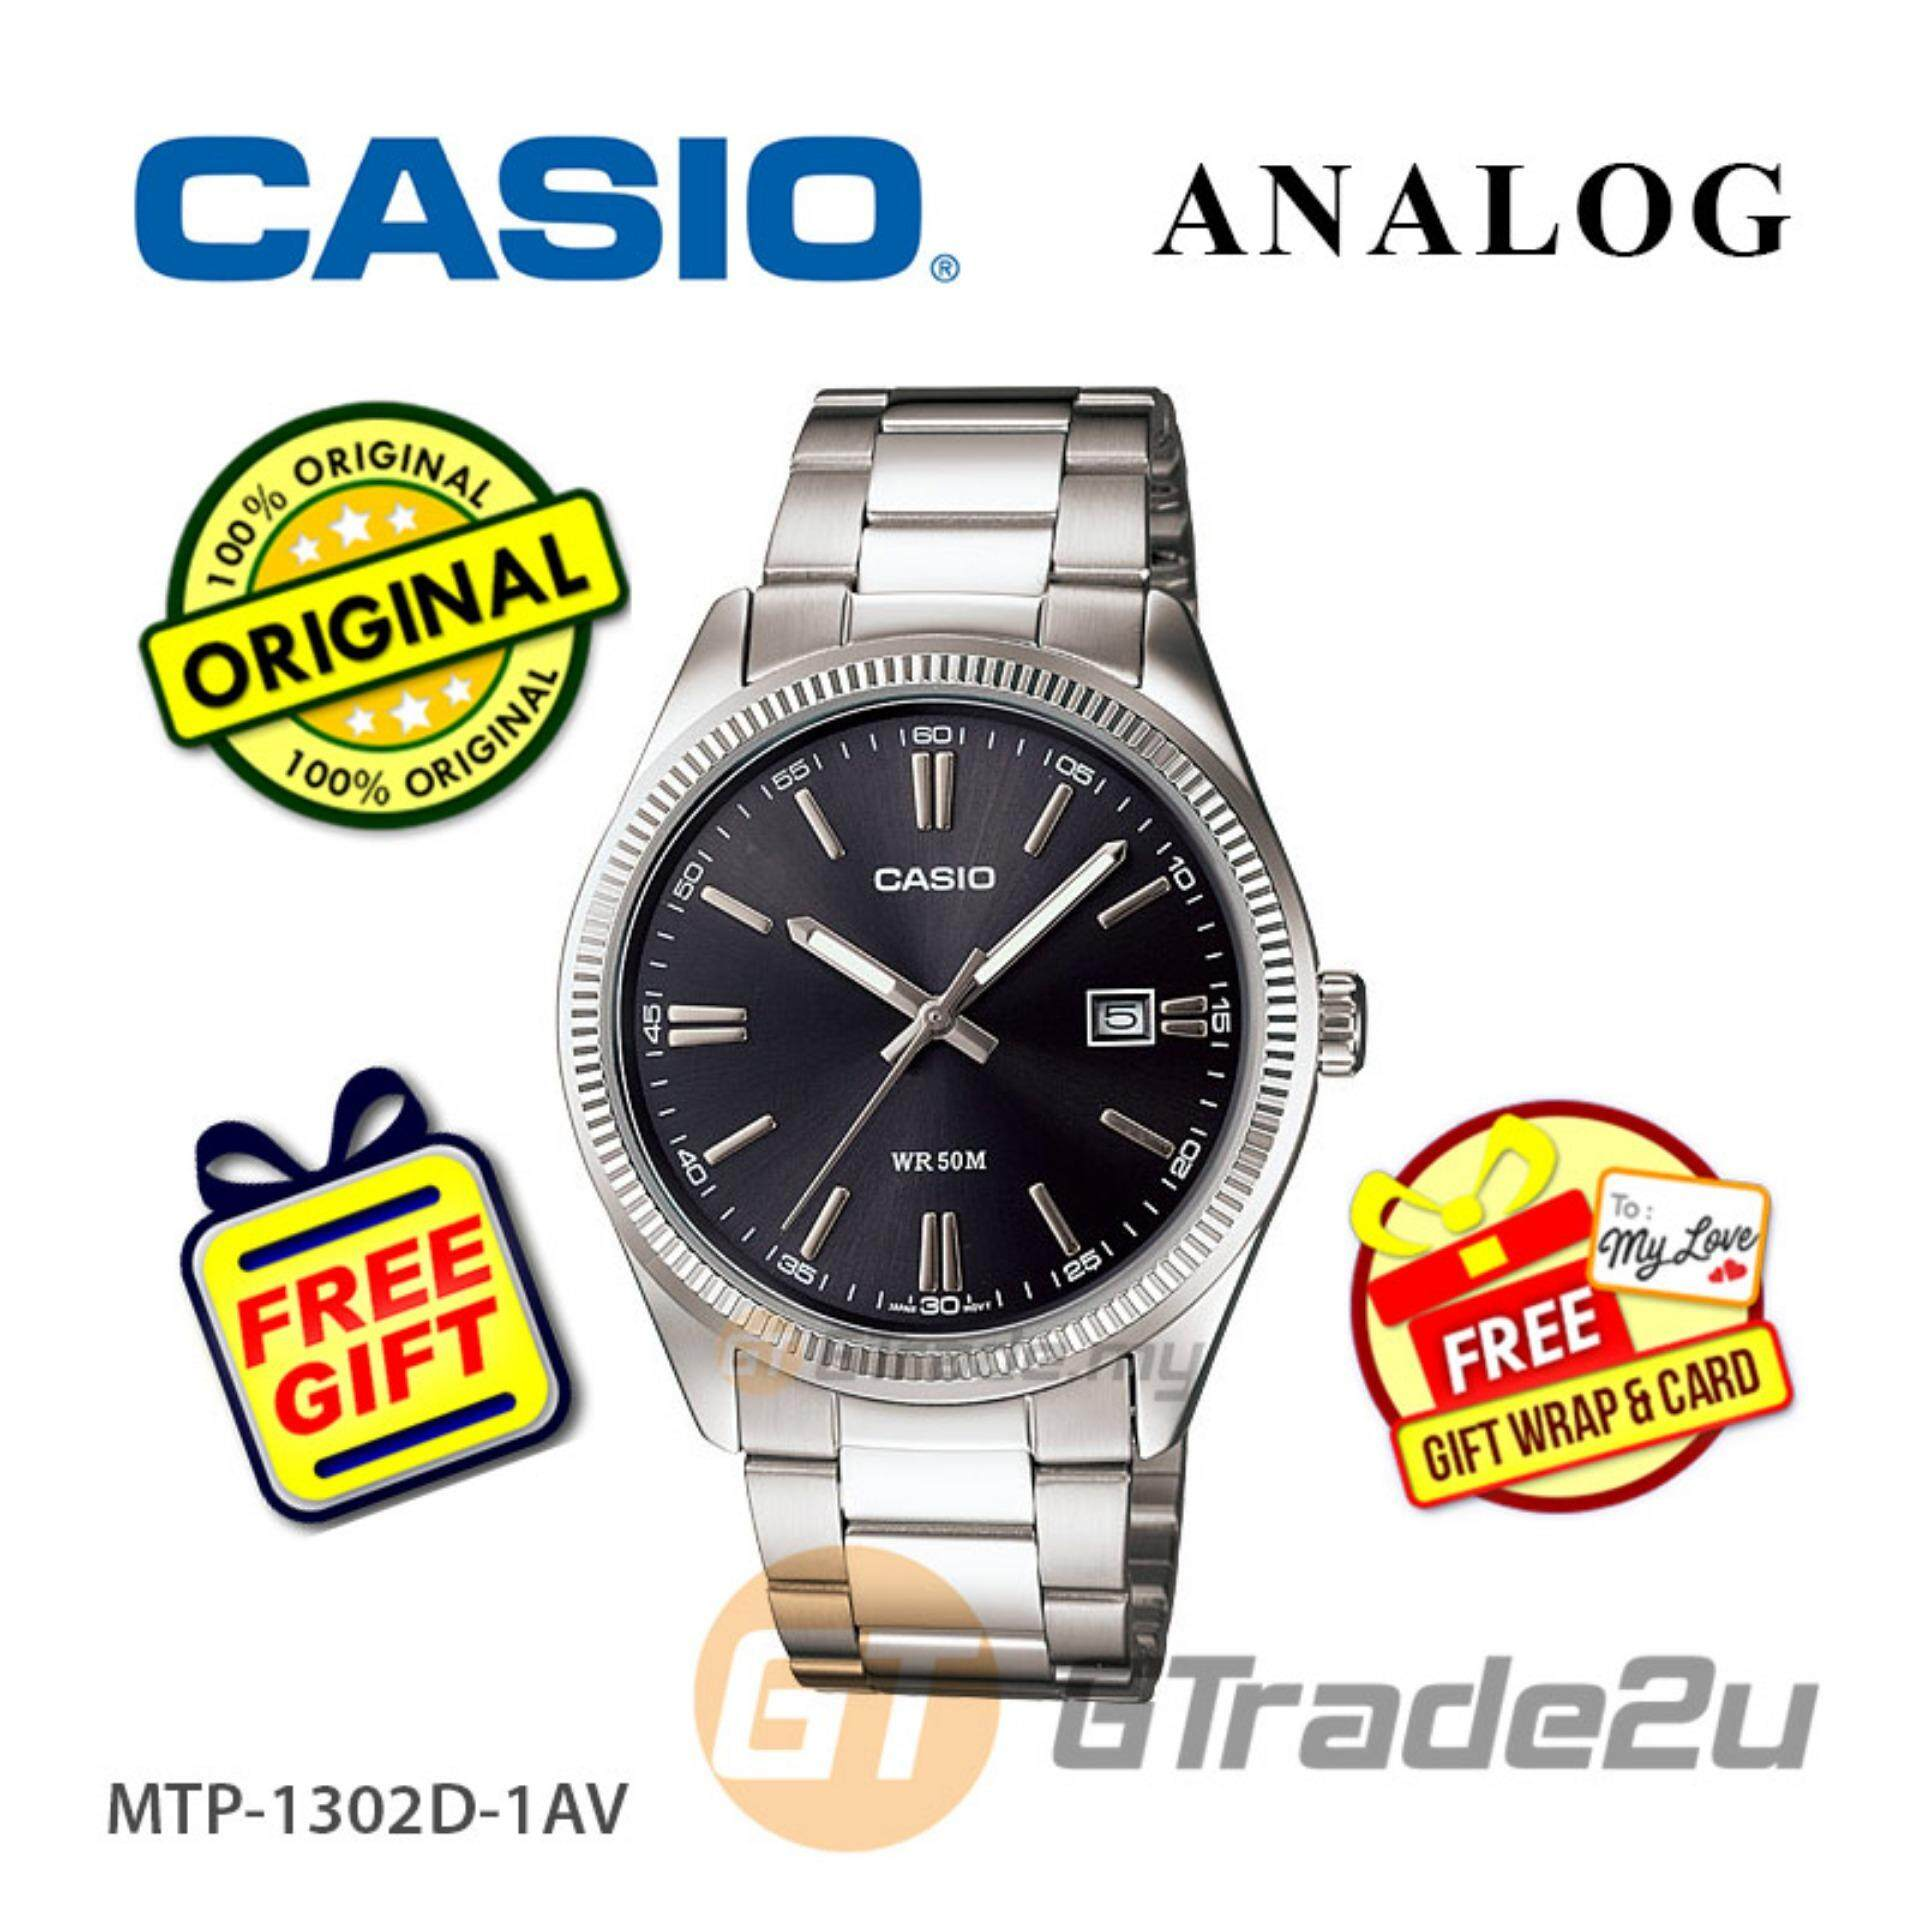 Casio Standard MTP-1302D-1A1V WR50m Analog Mens Watch Date Display - Black Malaysia